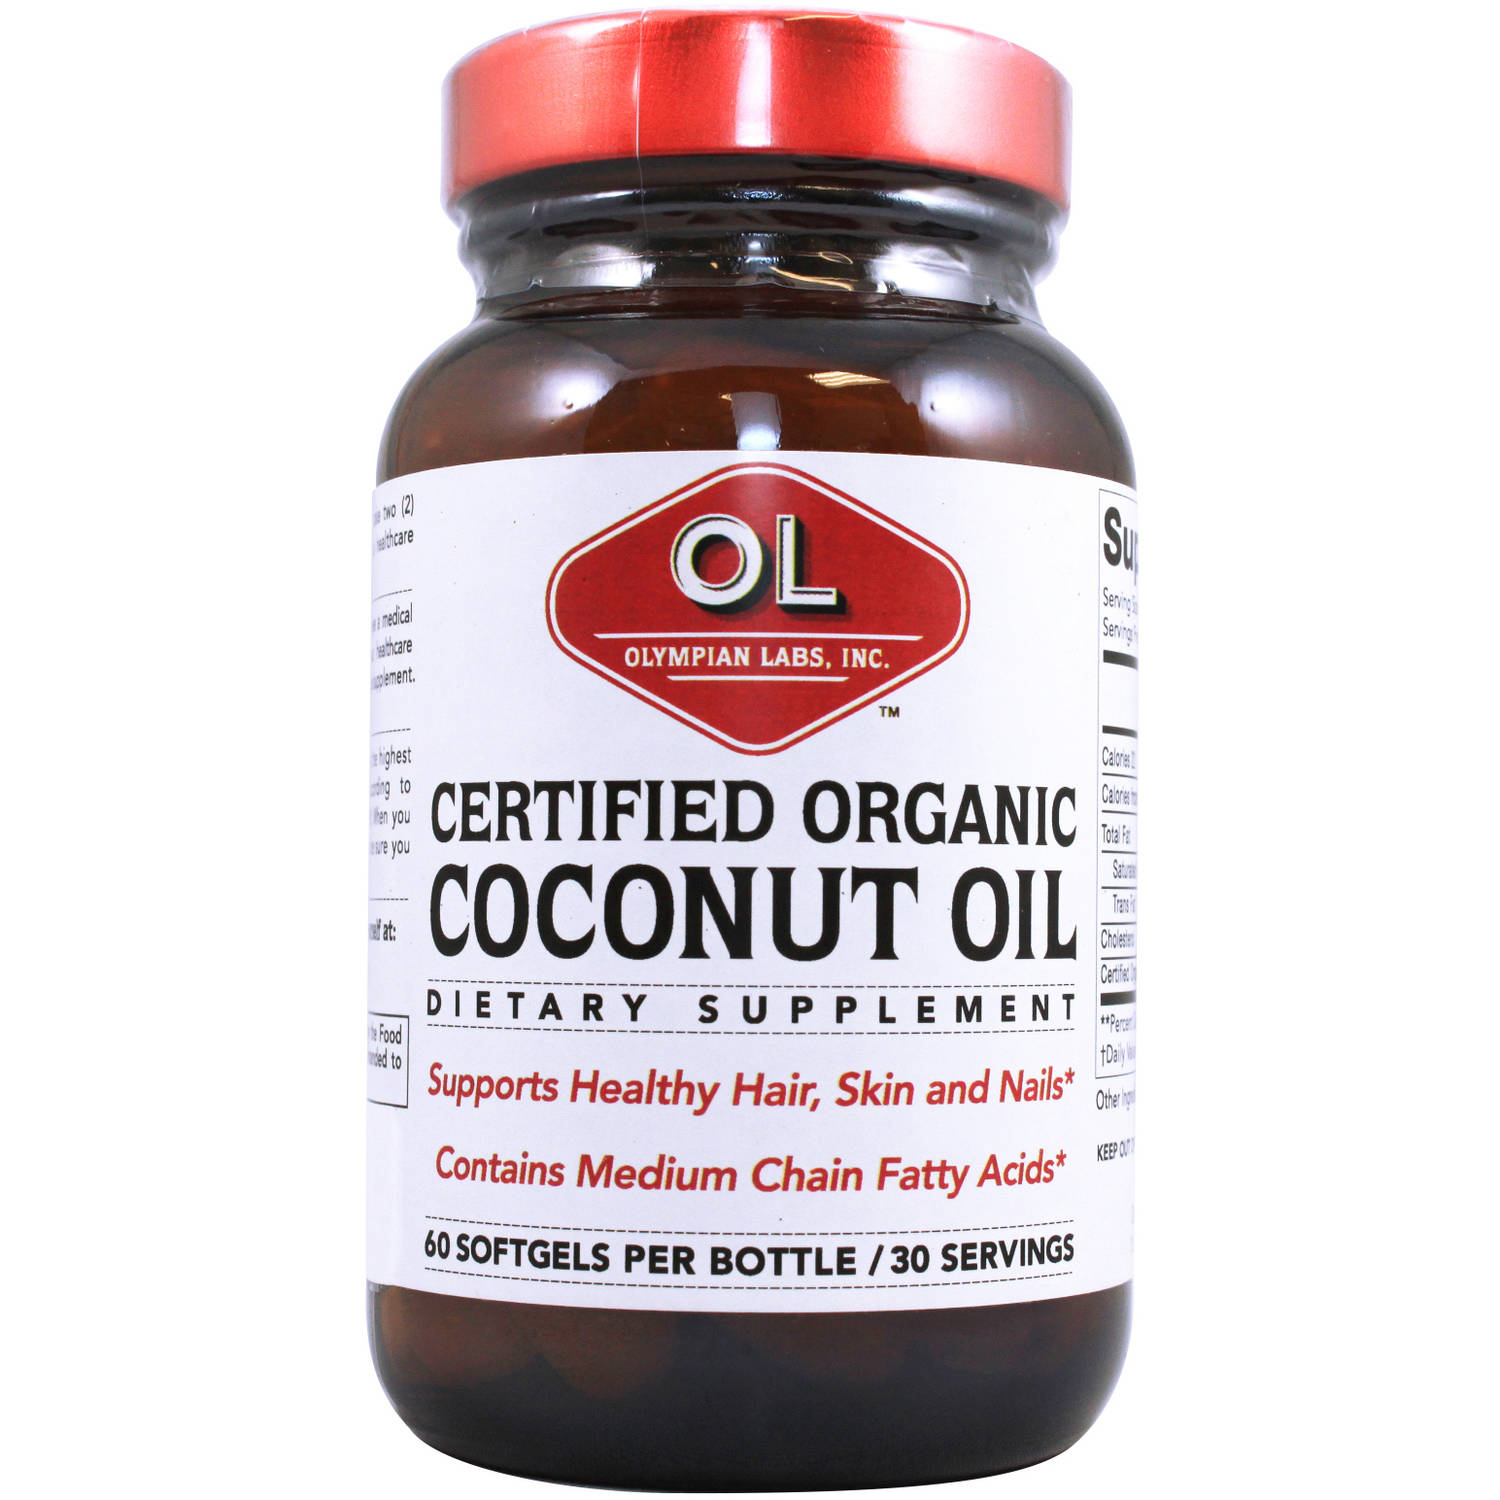 Olympian Labs Certified Organic Coconut Oil Dietary Supplement, 60 count